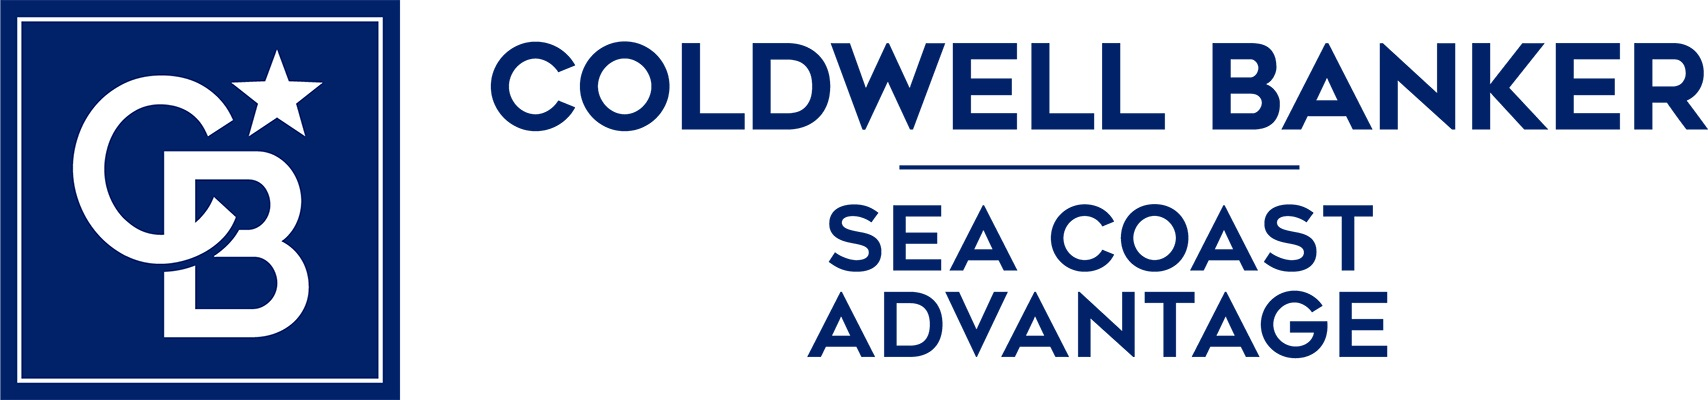 Elizabeth Downing - Coldwell Banker Sea Coast Advantage Realty